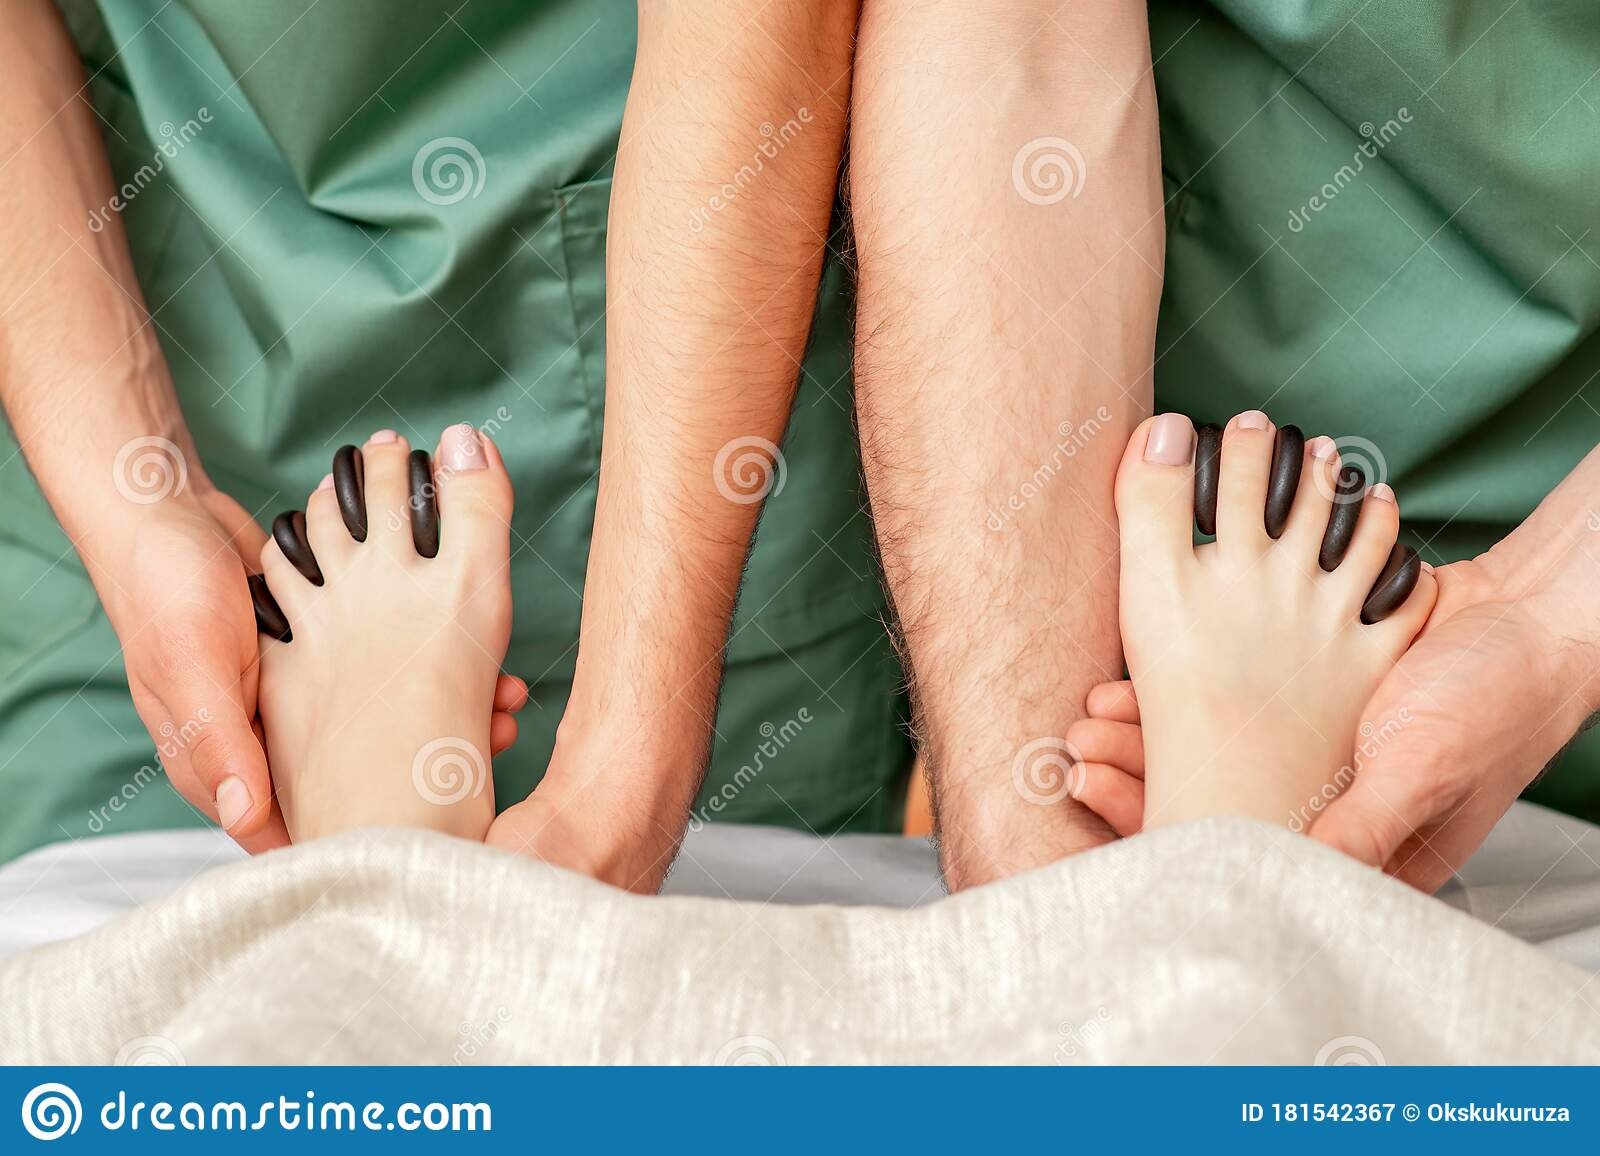 Woman Receiving Hot Stone Massage Stock Image - Image of ...